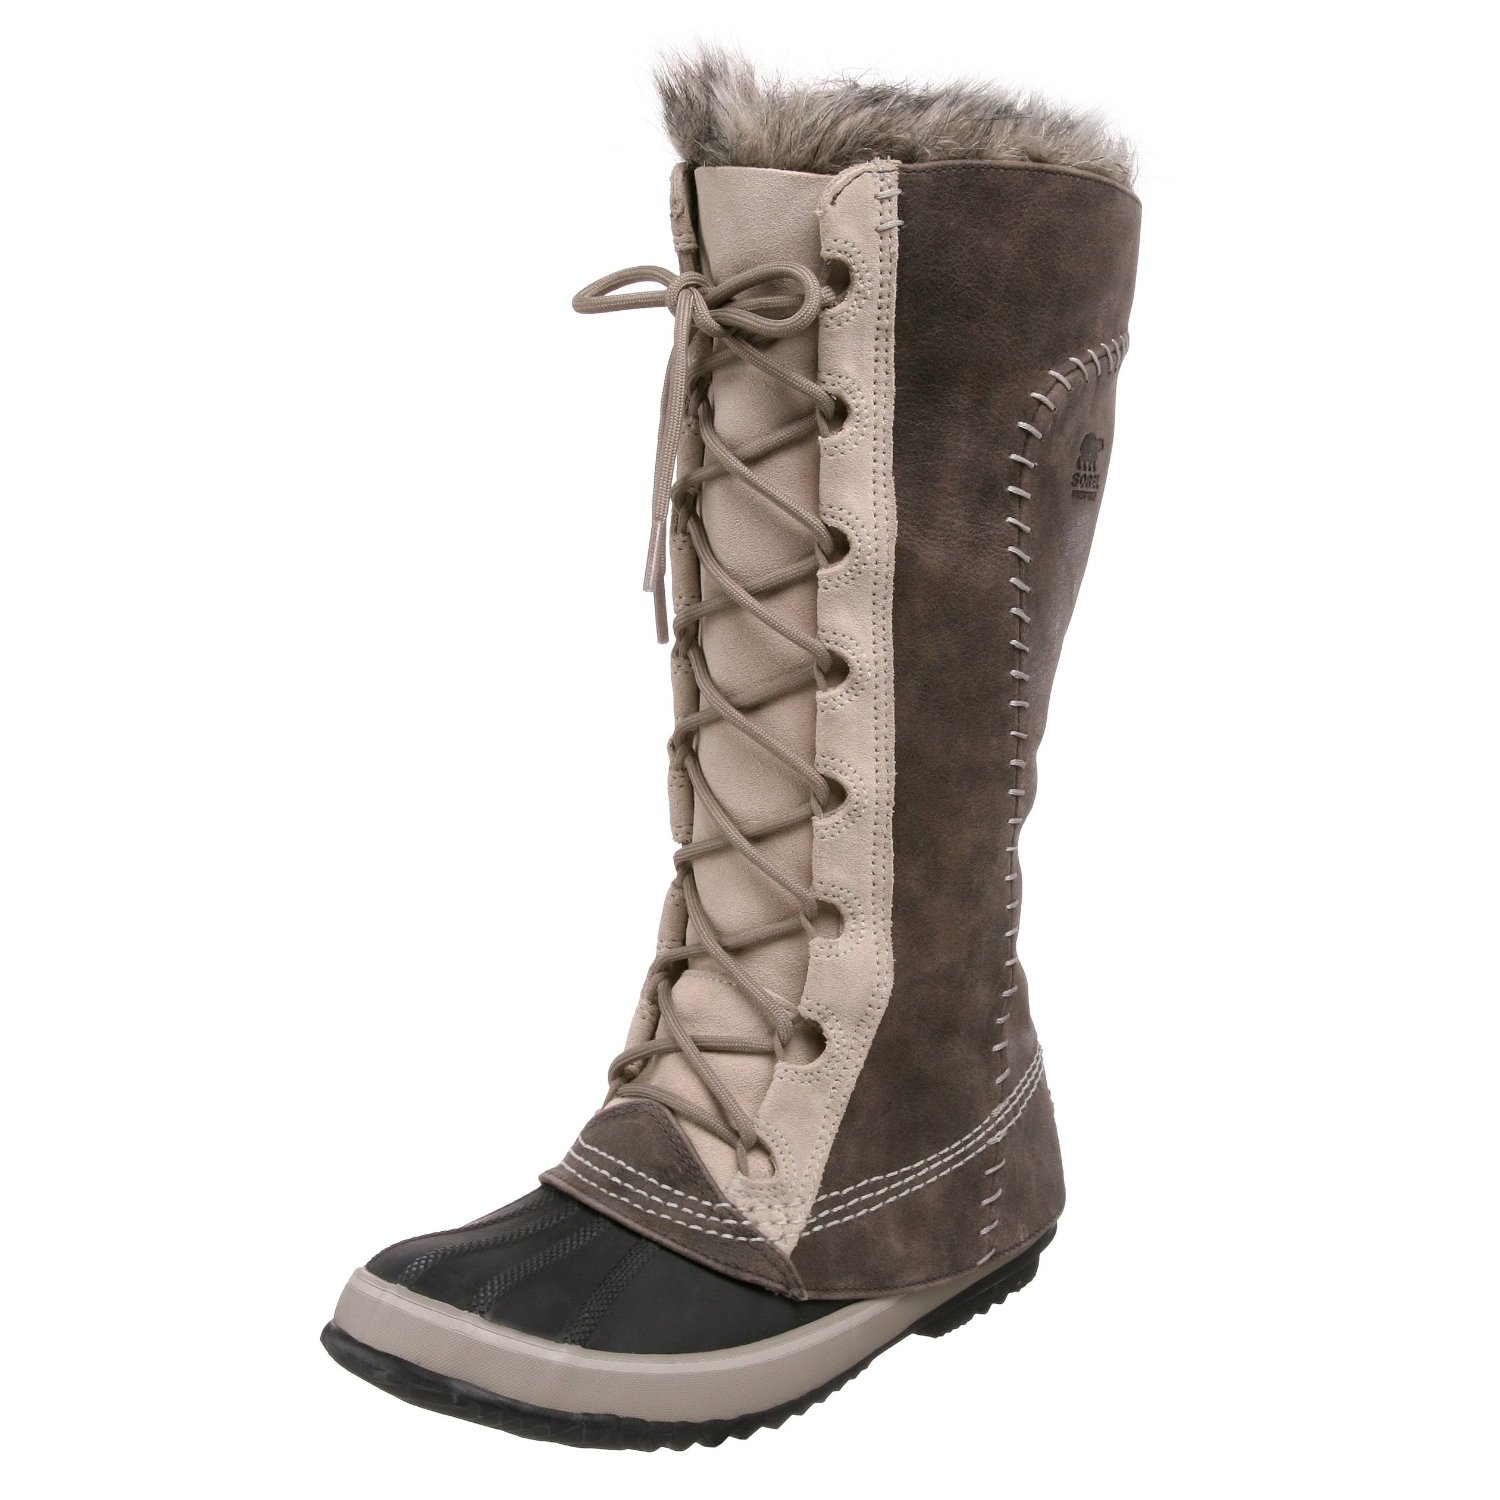 Stride boldly forth with the range of SOREL women's boots. Audacious styles take you from day to night, city to country. The only boots you'll need this season!